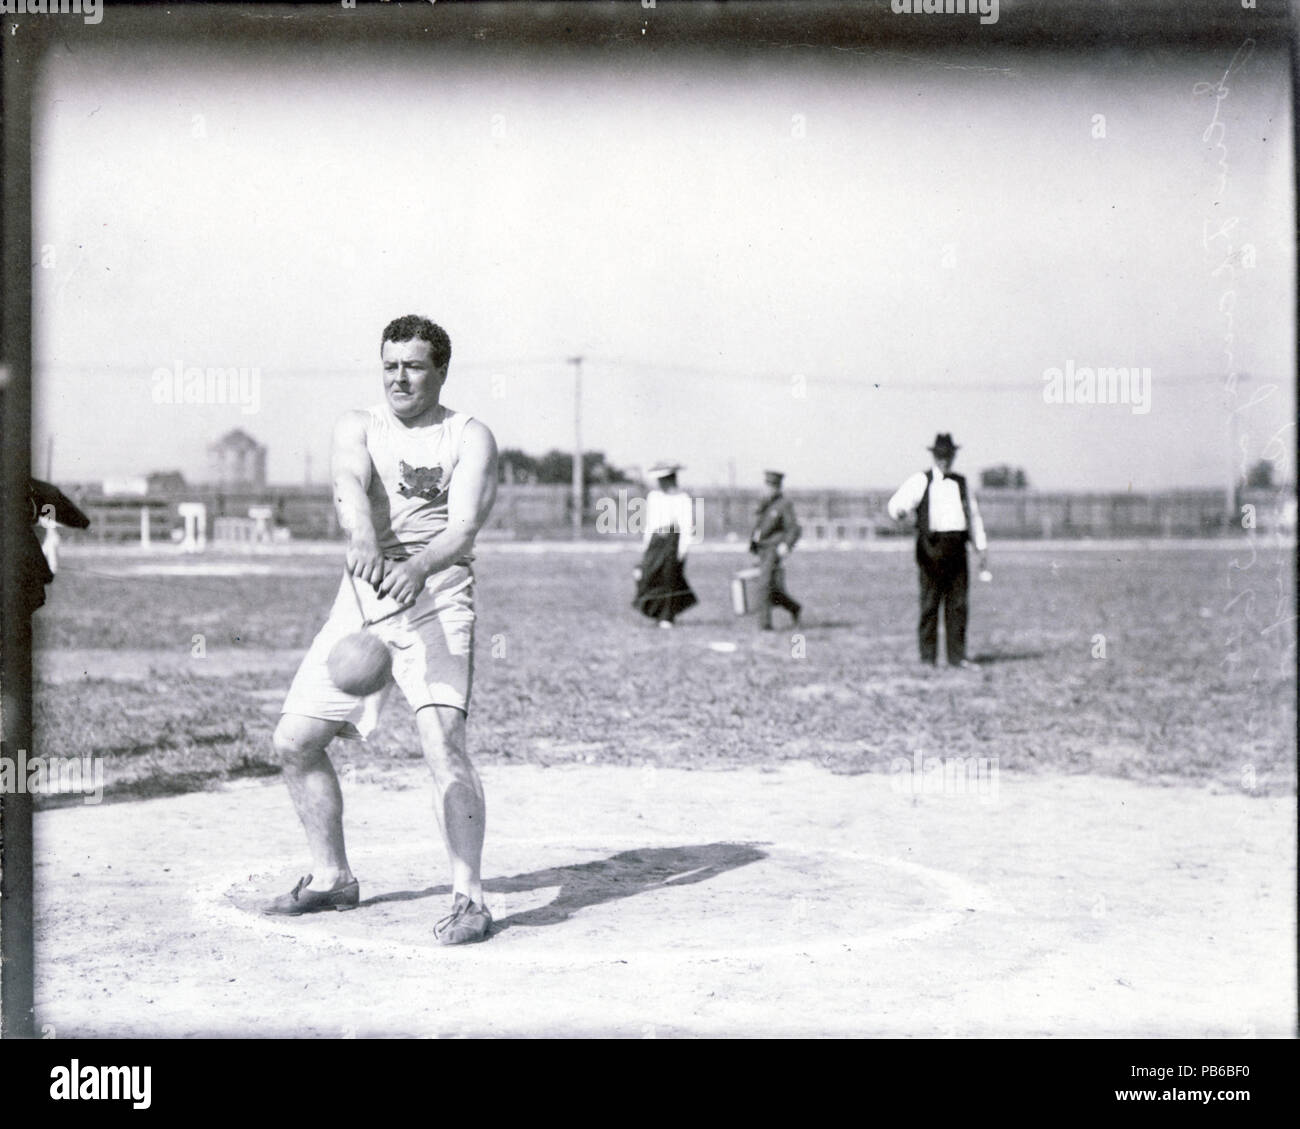 837 John Flannigan of the Greater New York Irish Athletic Association performing the 56 pound hammer throw at the 1904 Olympics - Stock Image